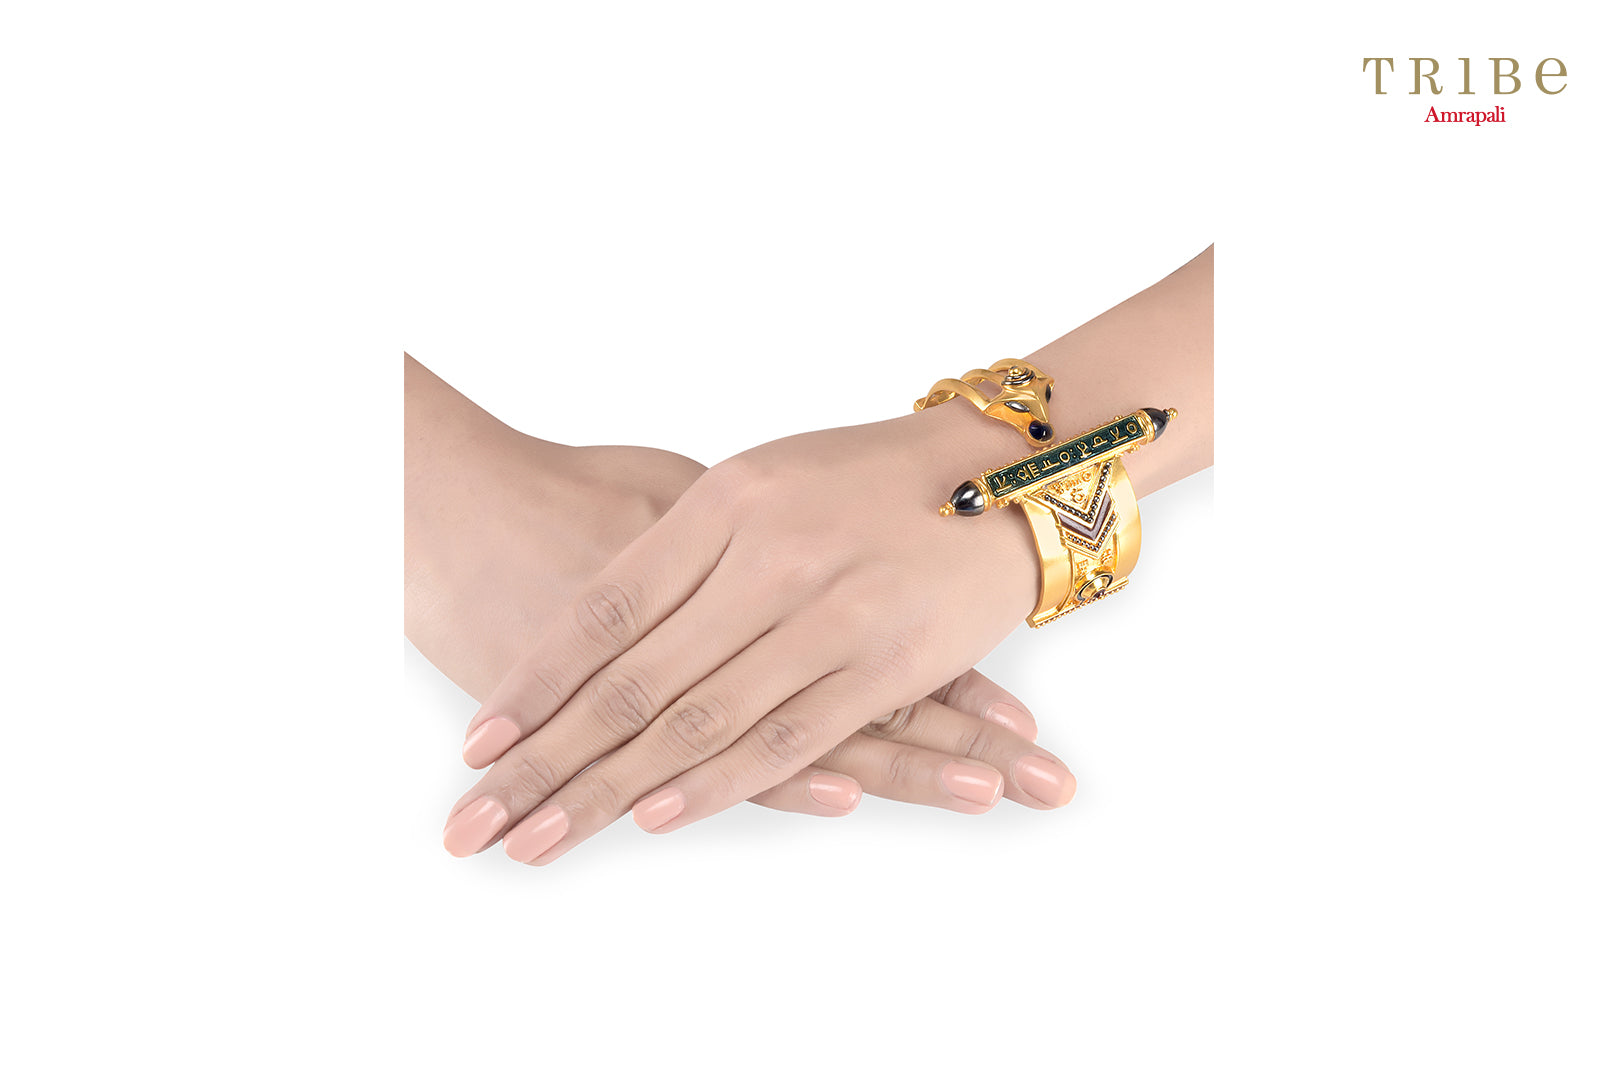 Buy Amrapali serpent mantra gold plated bangle online in USA. Add a sparkling touch to your ethnic look with beautiful Indian gold plated jewellery available at Pure Elegance exclusive Indian fashion store in USA or shop online.-hand view